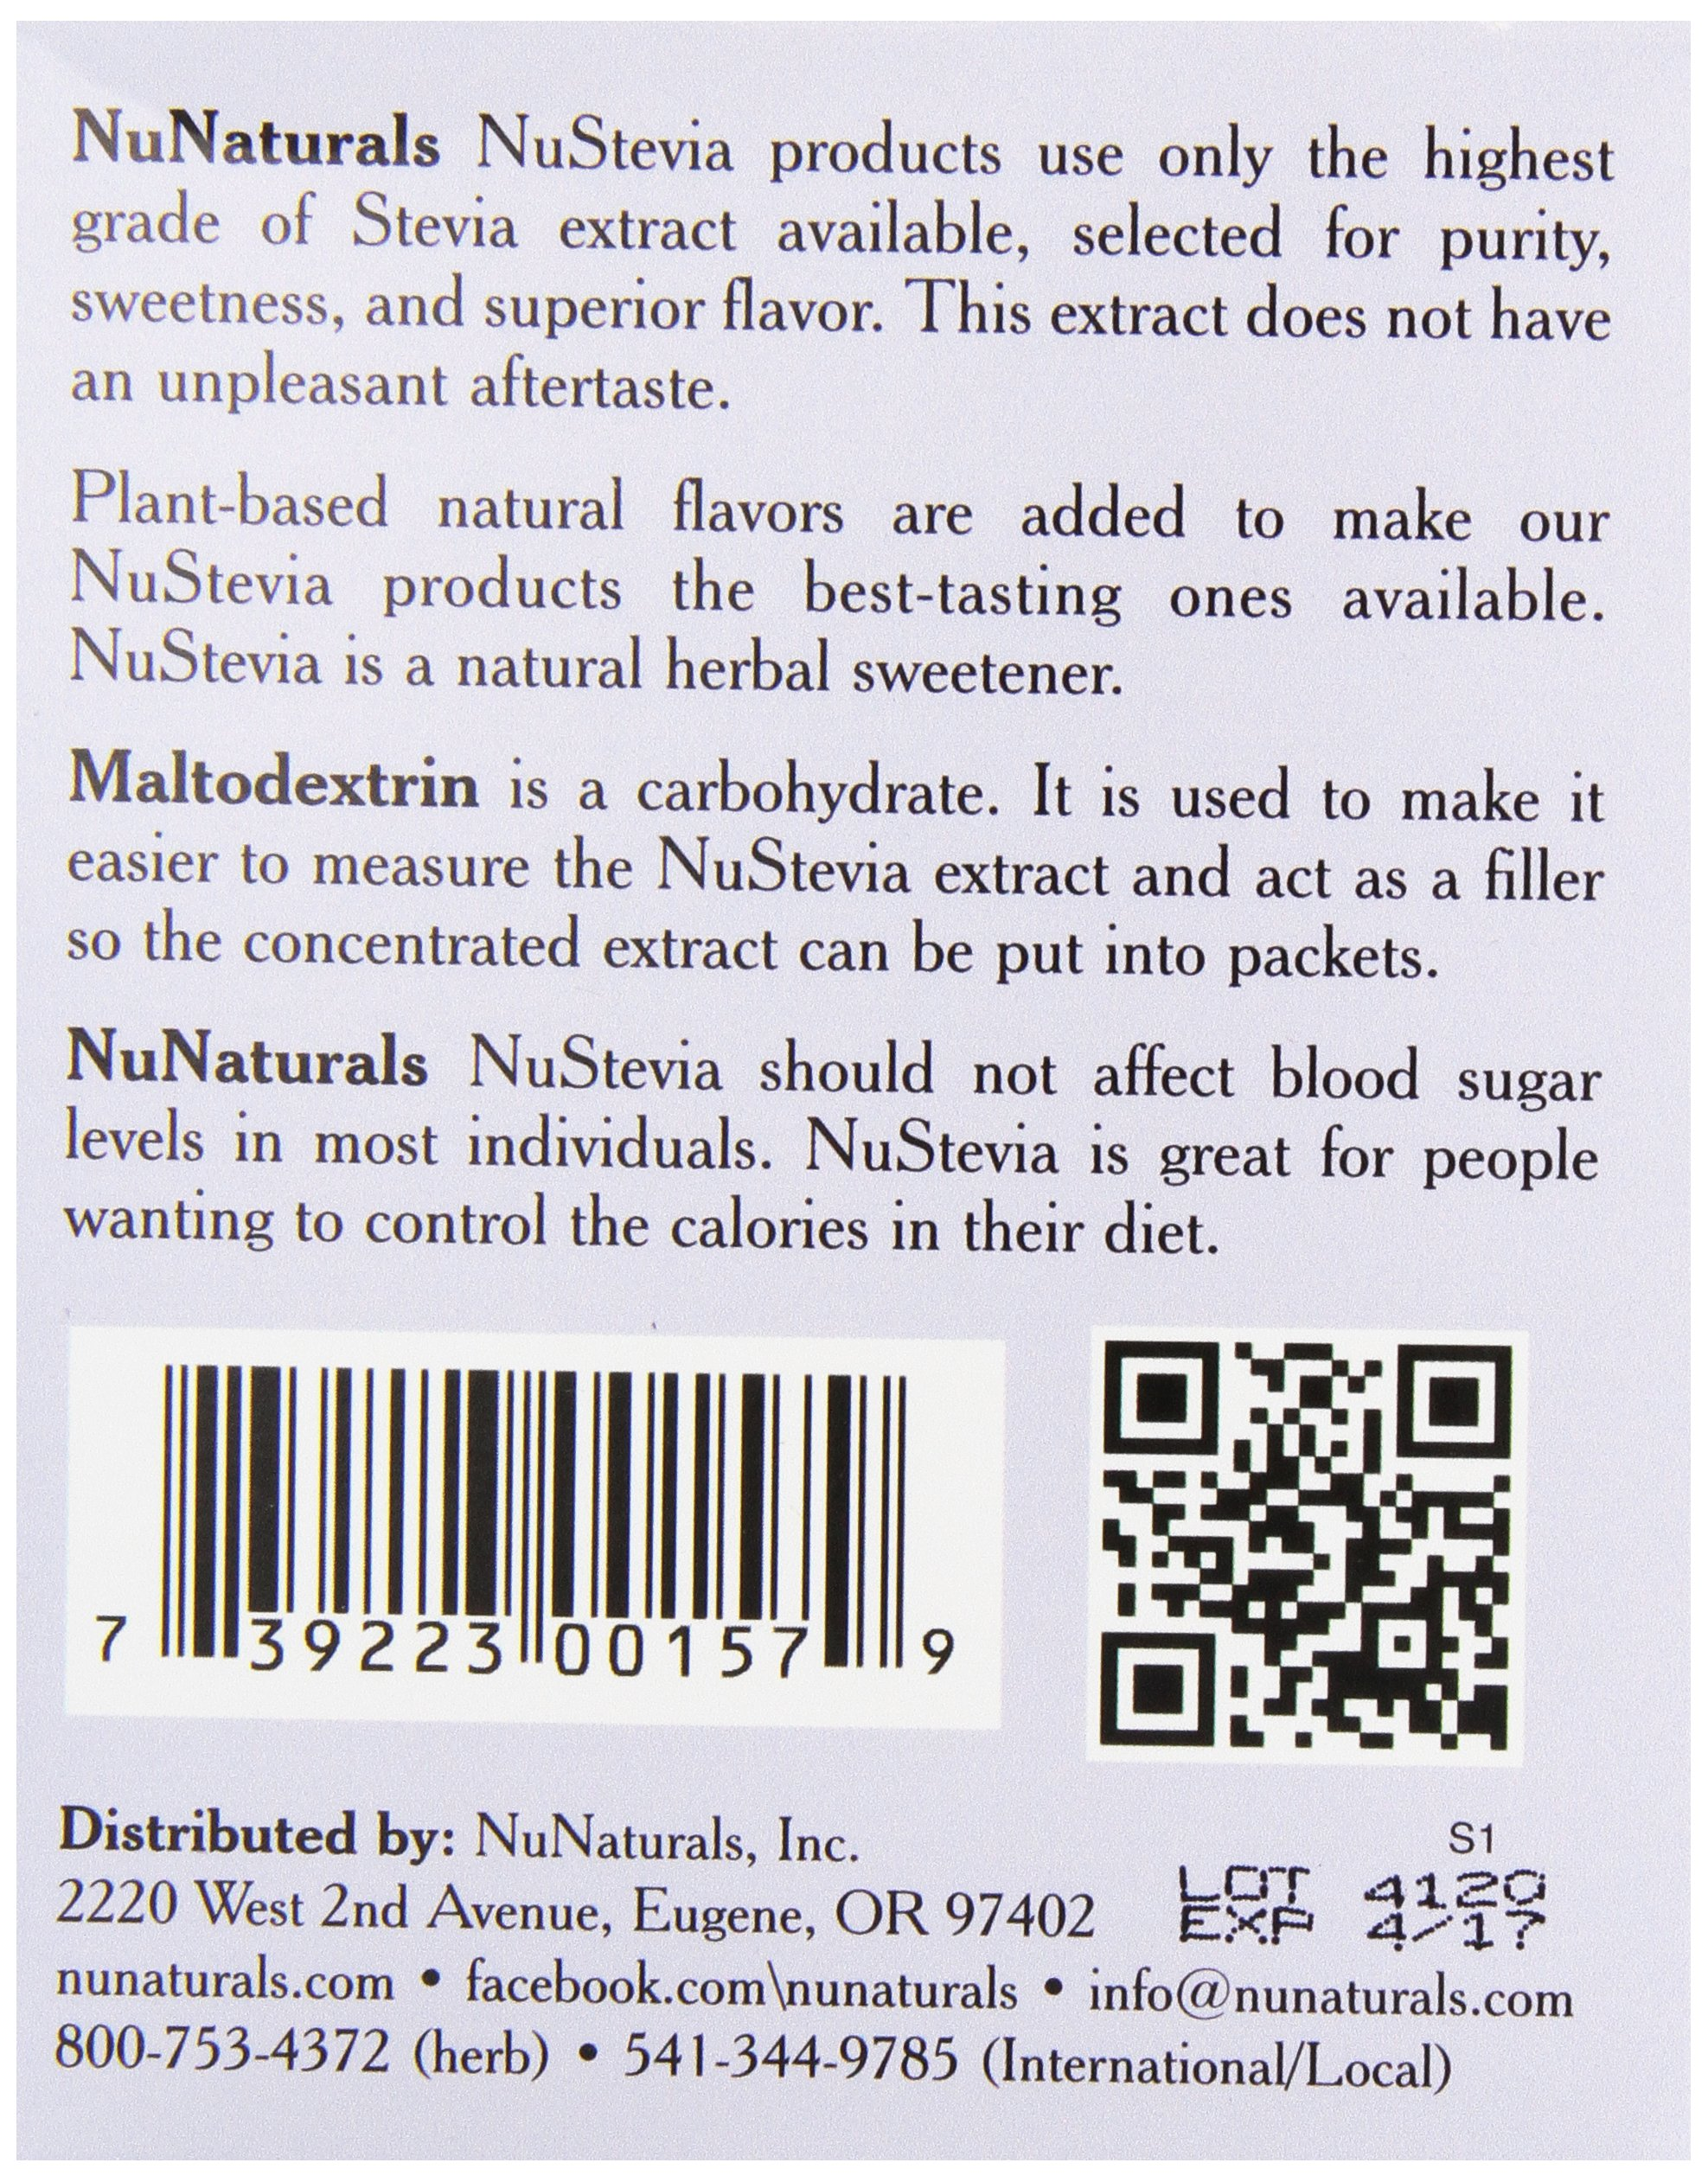 NuNaturals Nustevia White Stevia with Maltodextrin Packets, 50 count (Pack of 24) by NuNaturals (Image #4)